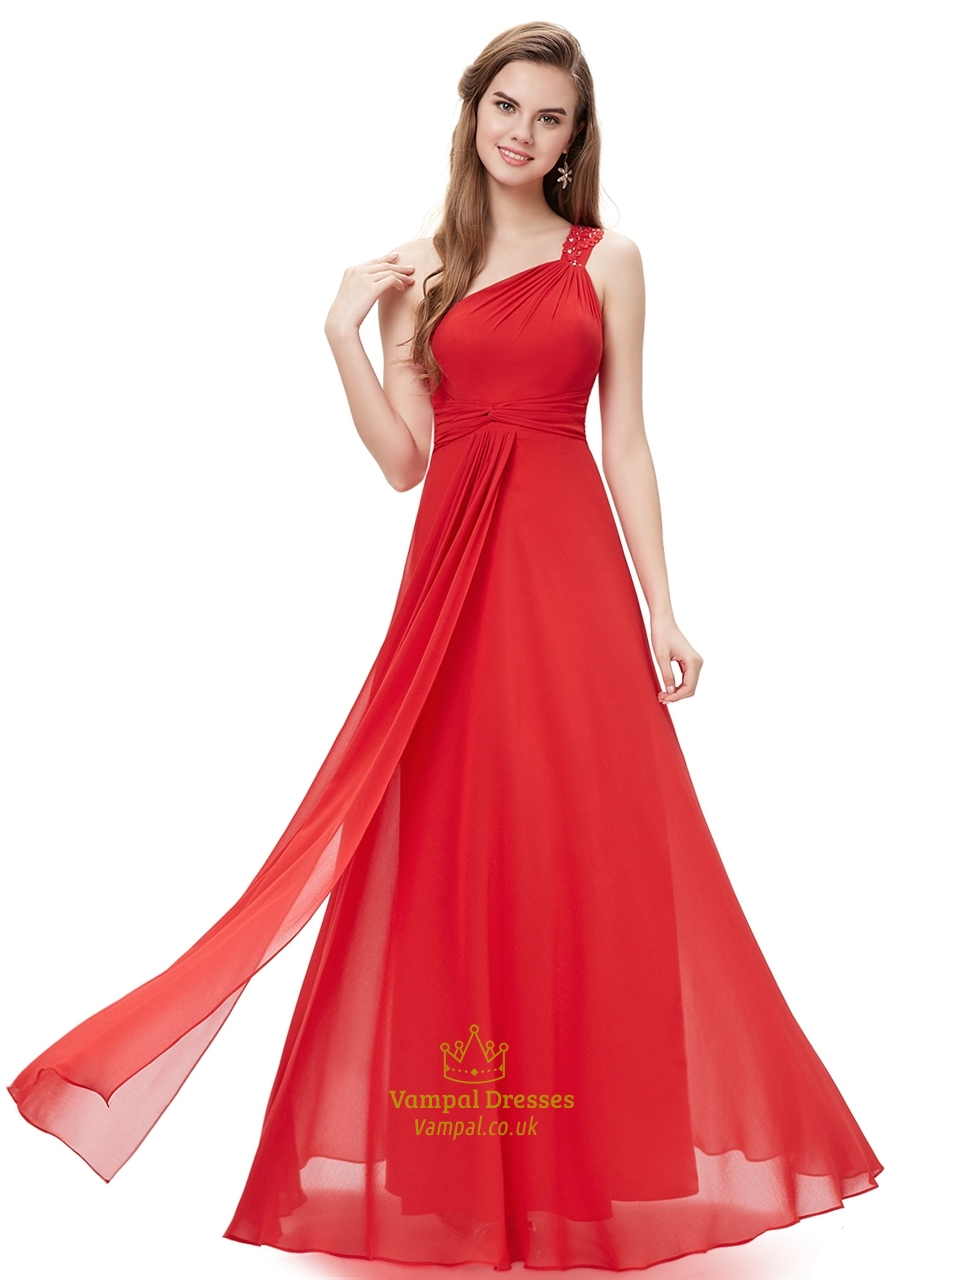 e4828cae16f Red Flowy One Shoulder Chiffon Bridesmaid Dresses With Beaded Straps SKU  -NW1180